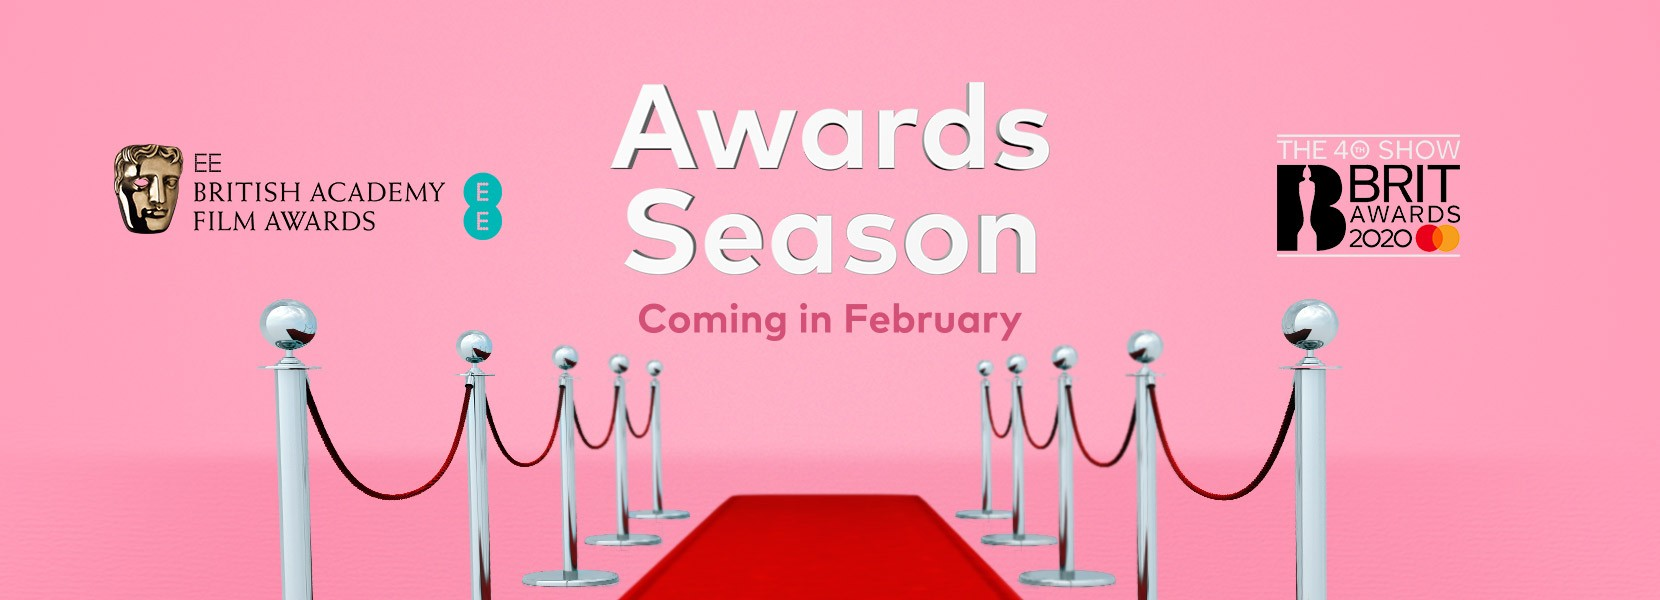 Awards Season 2020 BBHPT